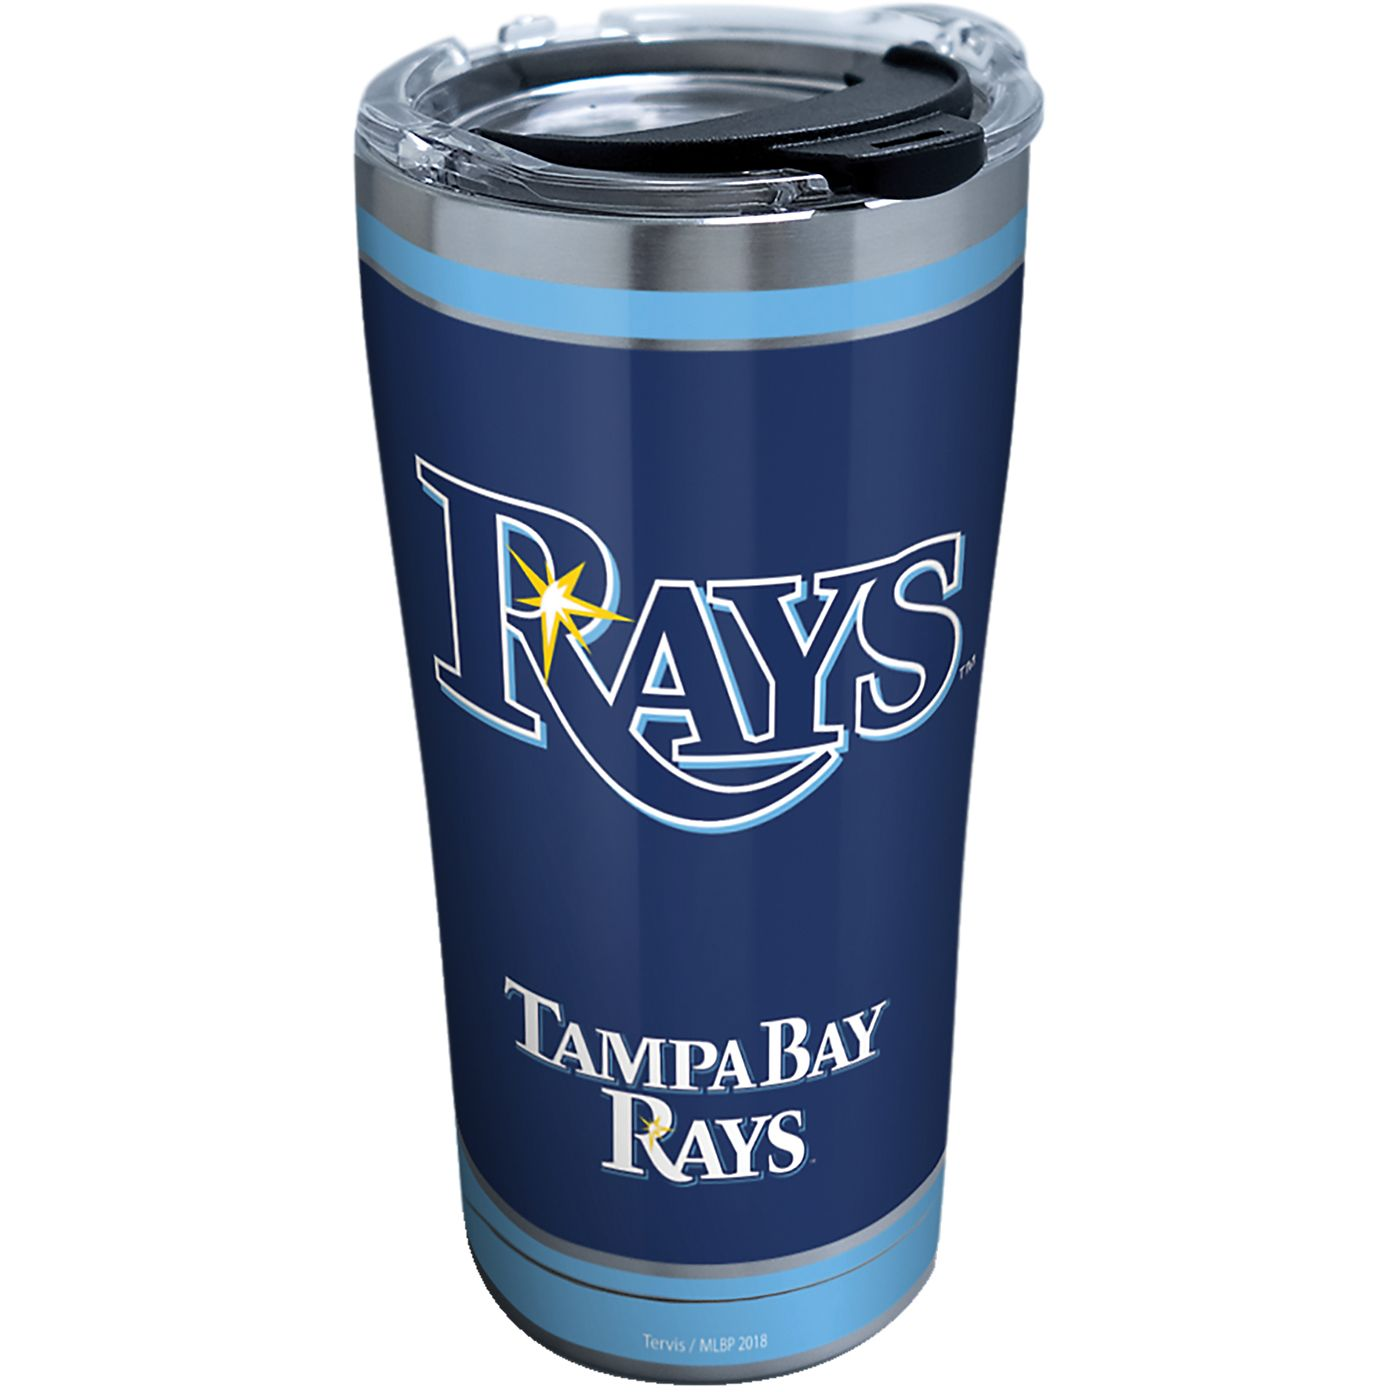 Tervis Tampa Bay Rays 20oz. Stainless Steel Home Run Tumbler